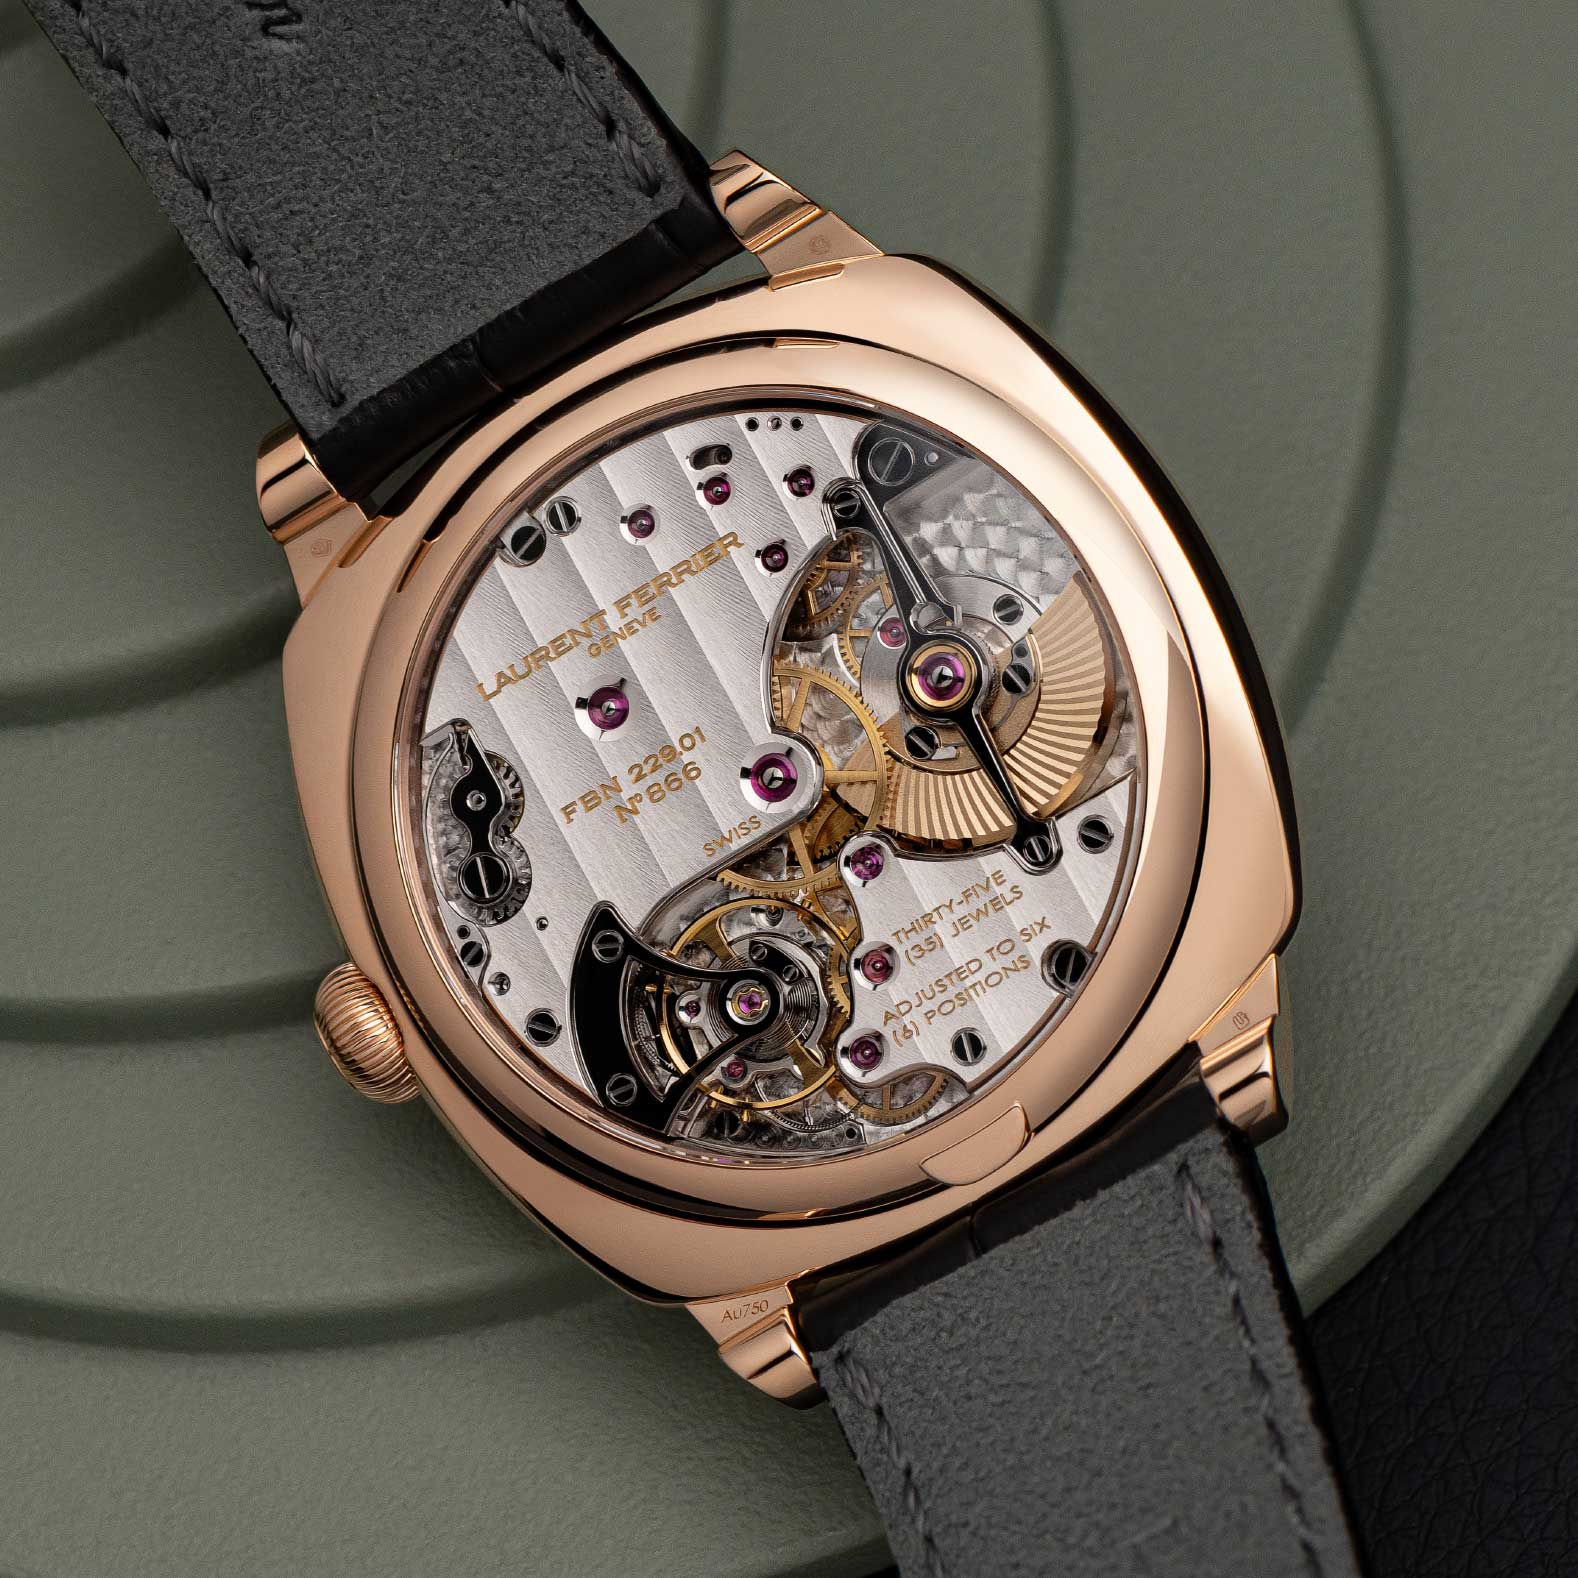 Caseback of the 2021 Laurent Ferrier Square Micro-Rotor in 18K 5N red gold